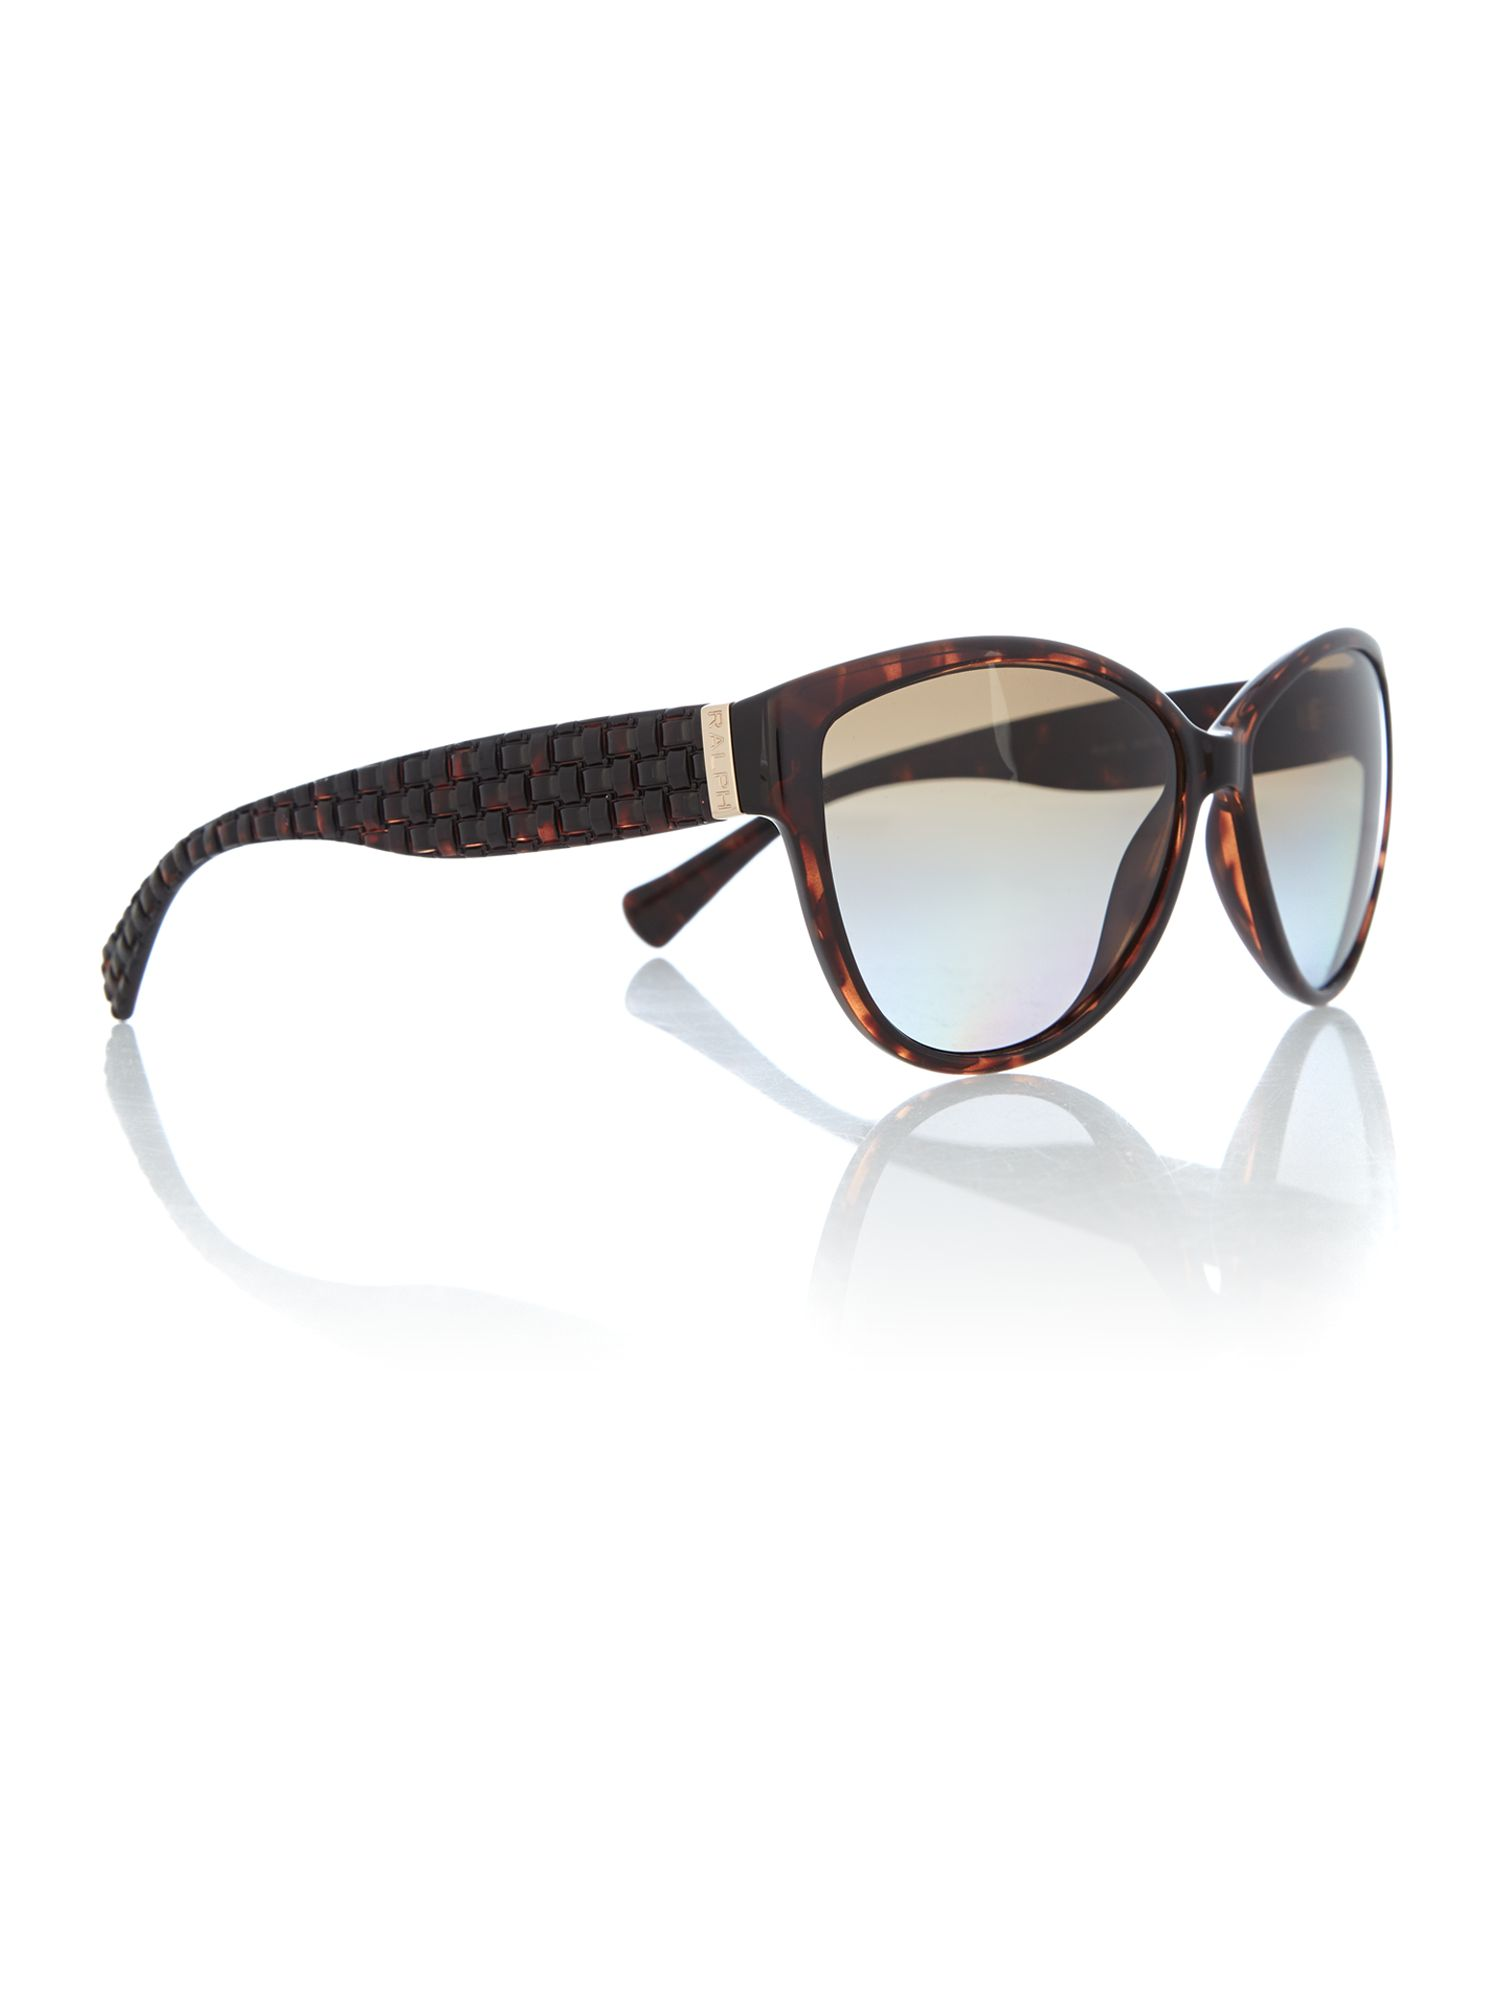 Ra5176 ladies cat eye sunglasses